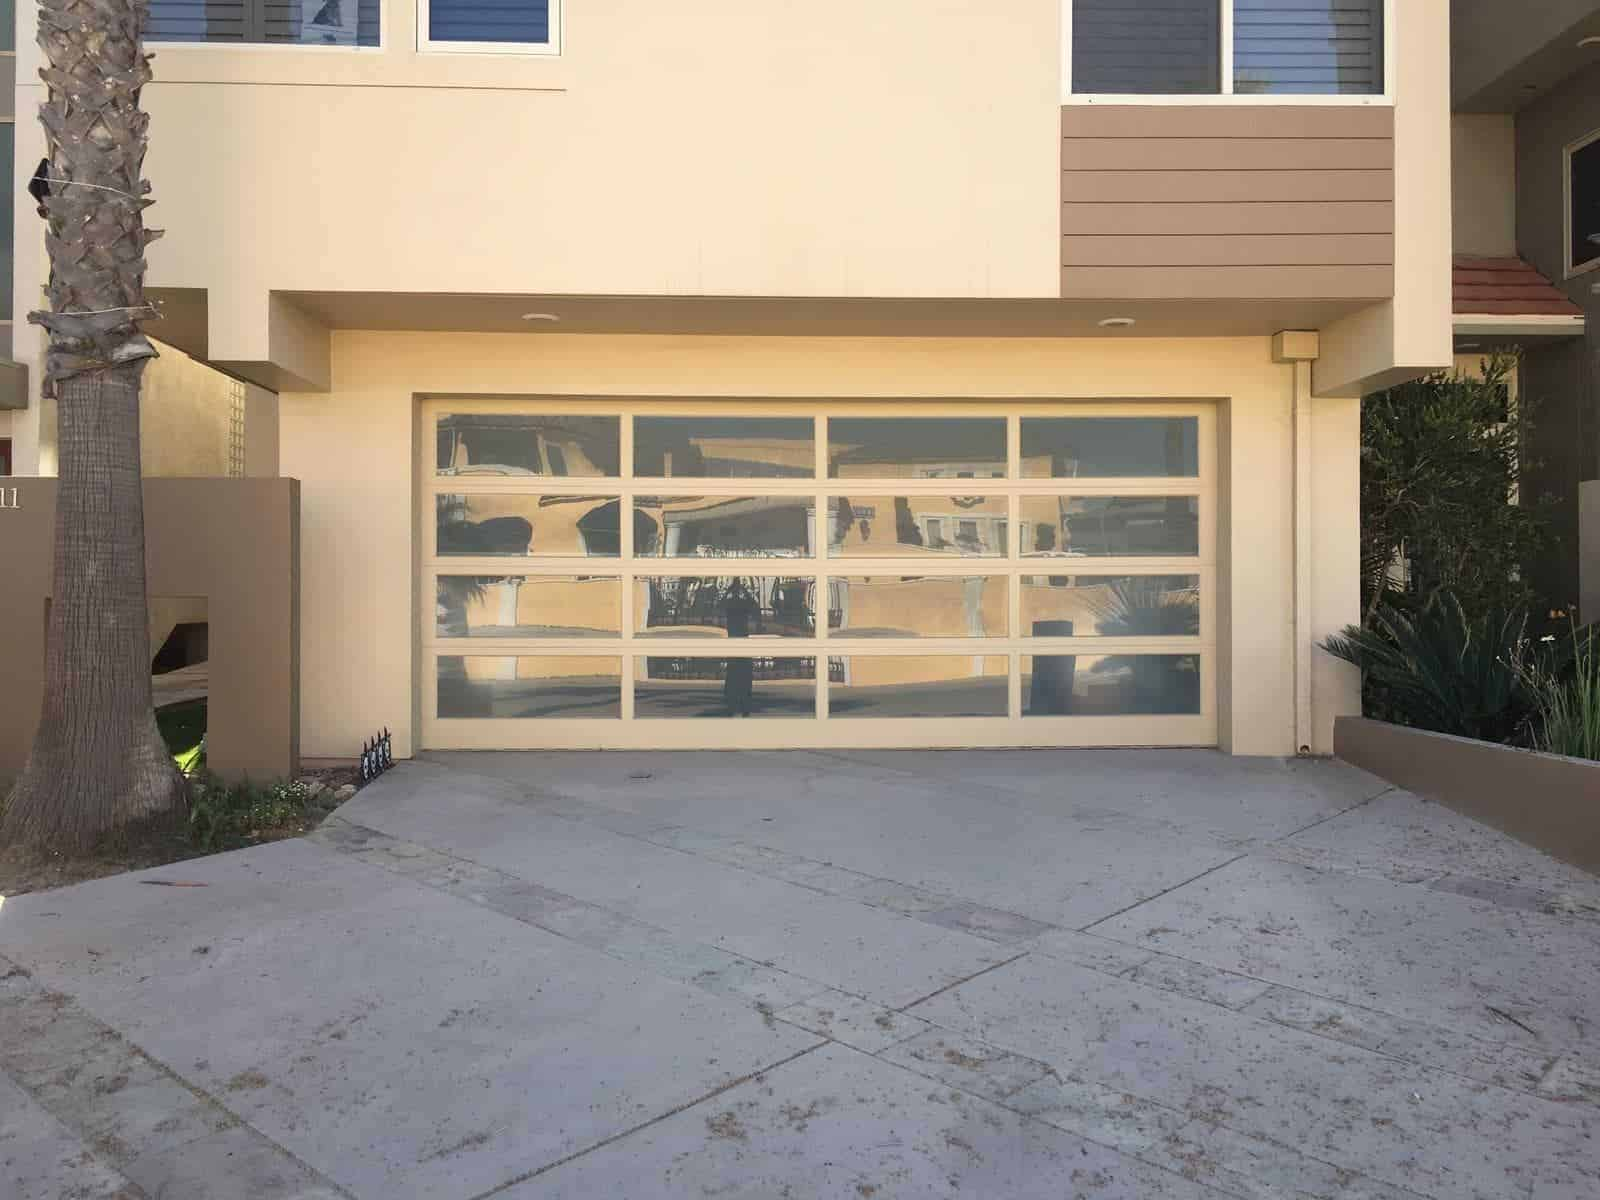 Waterloo Garage door repair and replacement